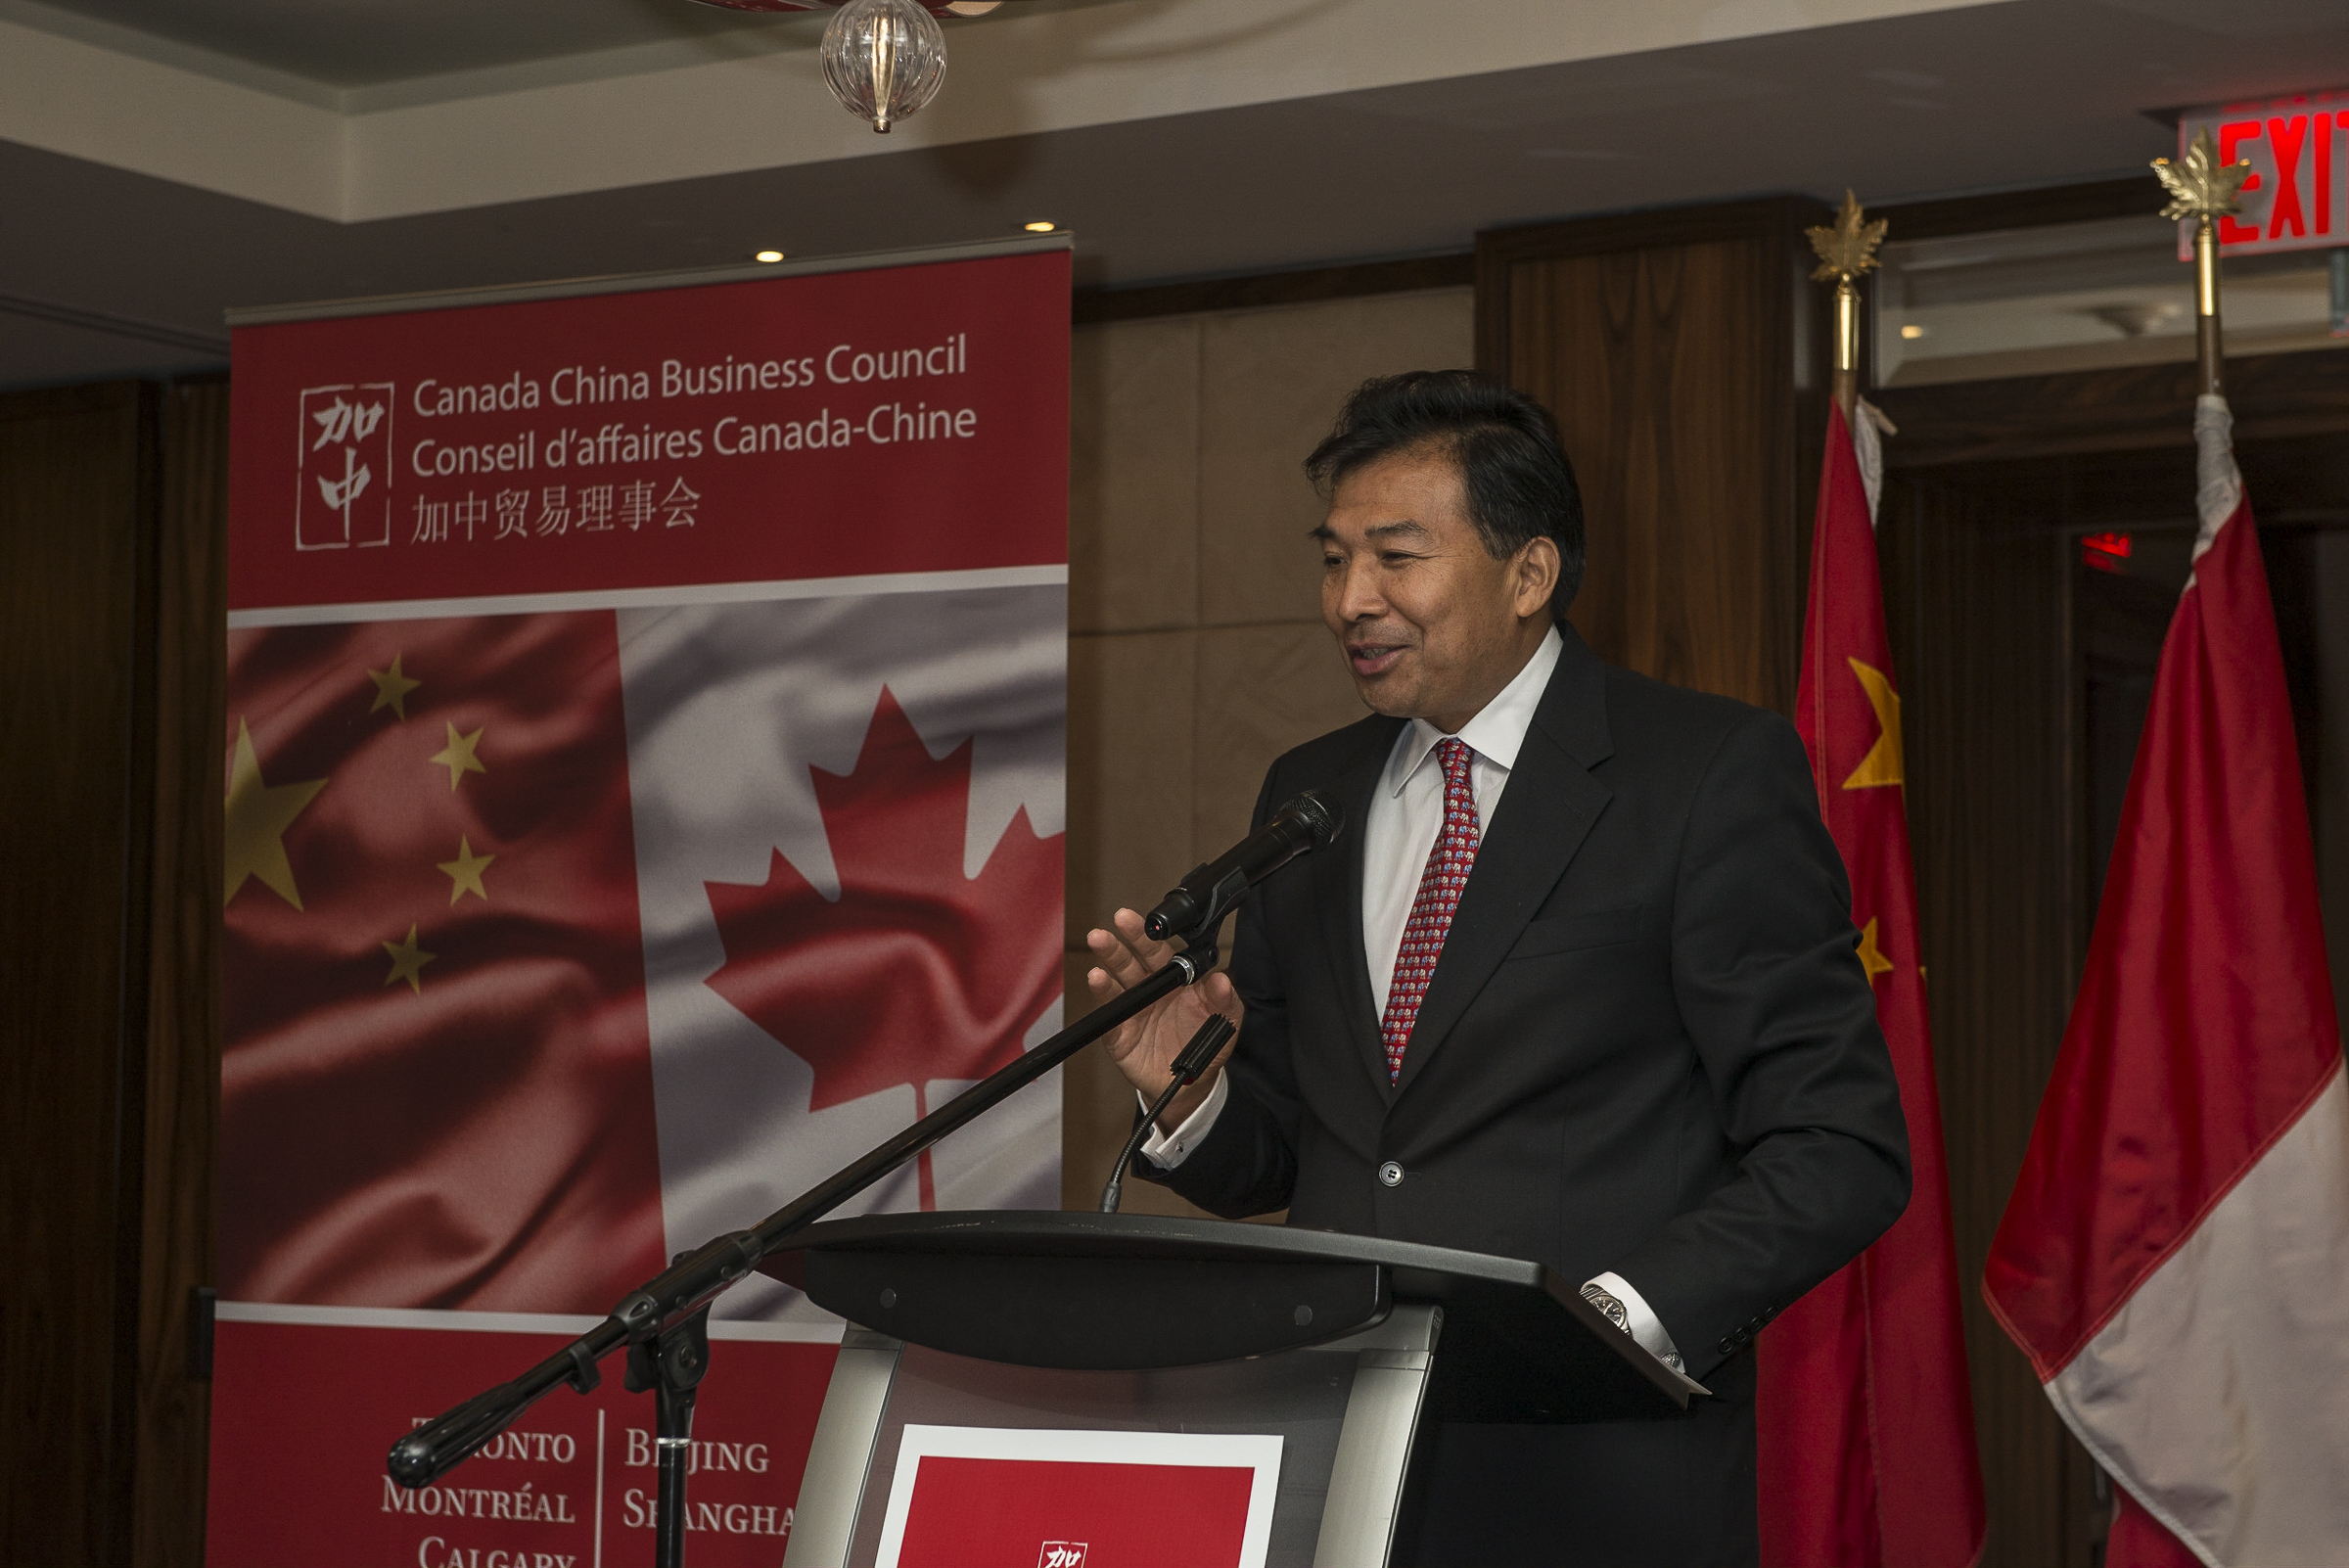 Welcome Dinner for His Excellency LUO Zhaohui, China's New Ambassador to Canada